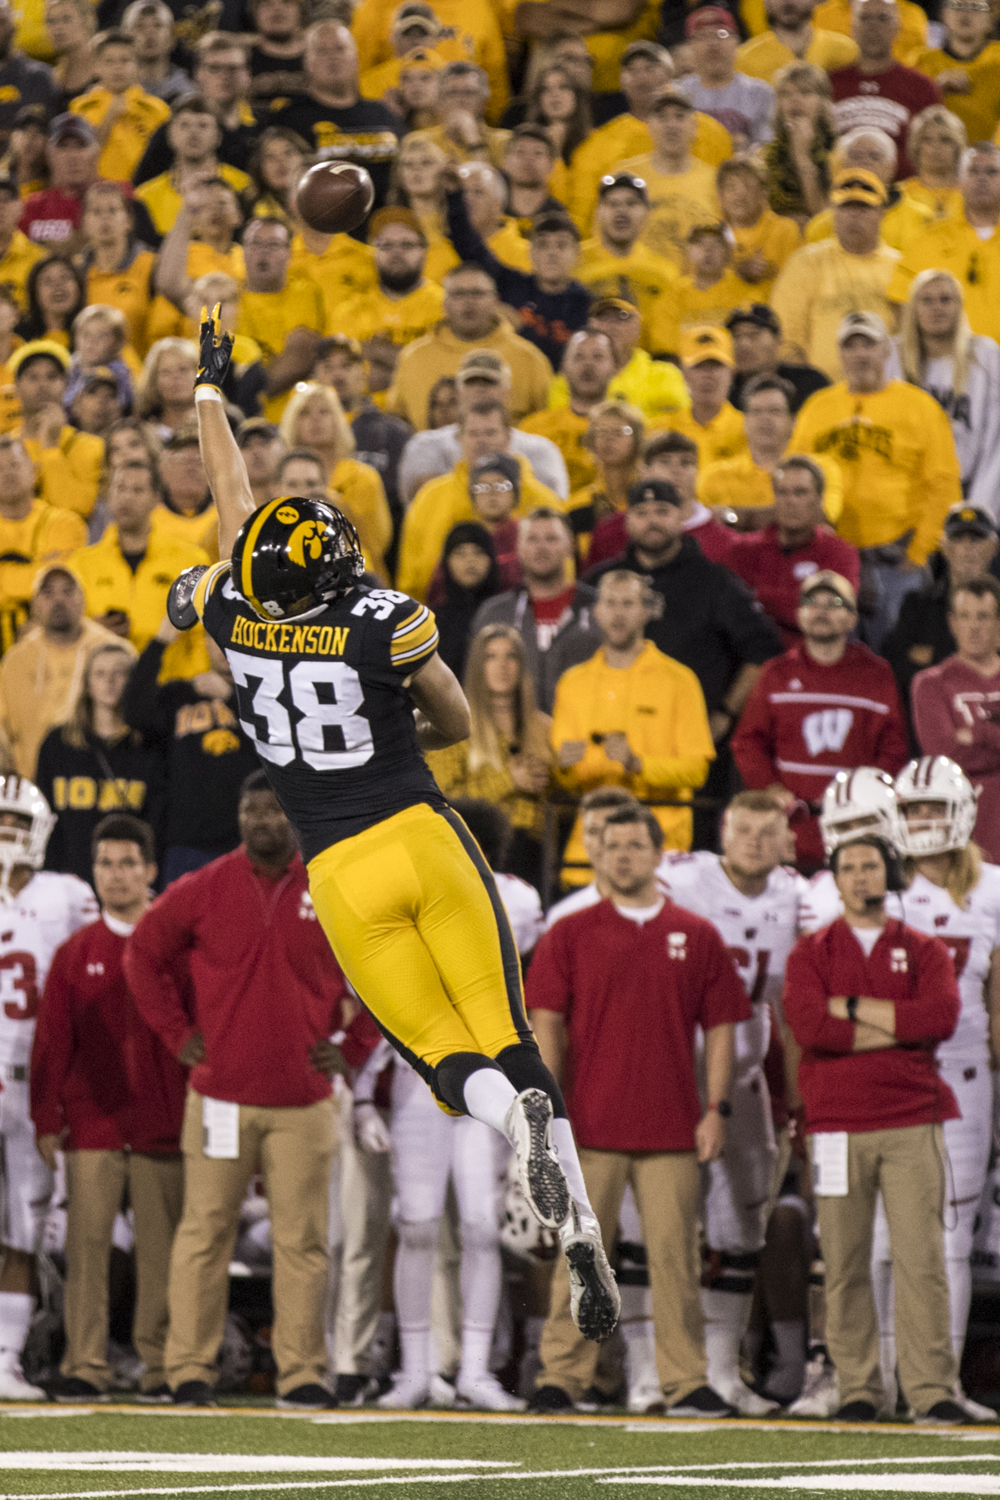 Iowa+tight+end+T.J.+Hockenson+jumps+as+a+pass+sails+over+his+head+during+Iowa%27s+game+against+Wisconsin+at+Kinnick+Stadium+on+Saturday%2C+September+22%2C+2018.+The+Badgers+defeated+the+Hawkeyes+28-17.